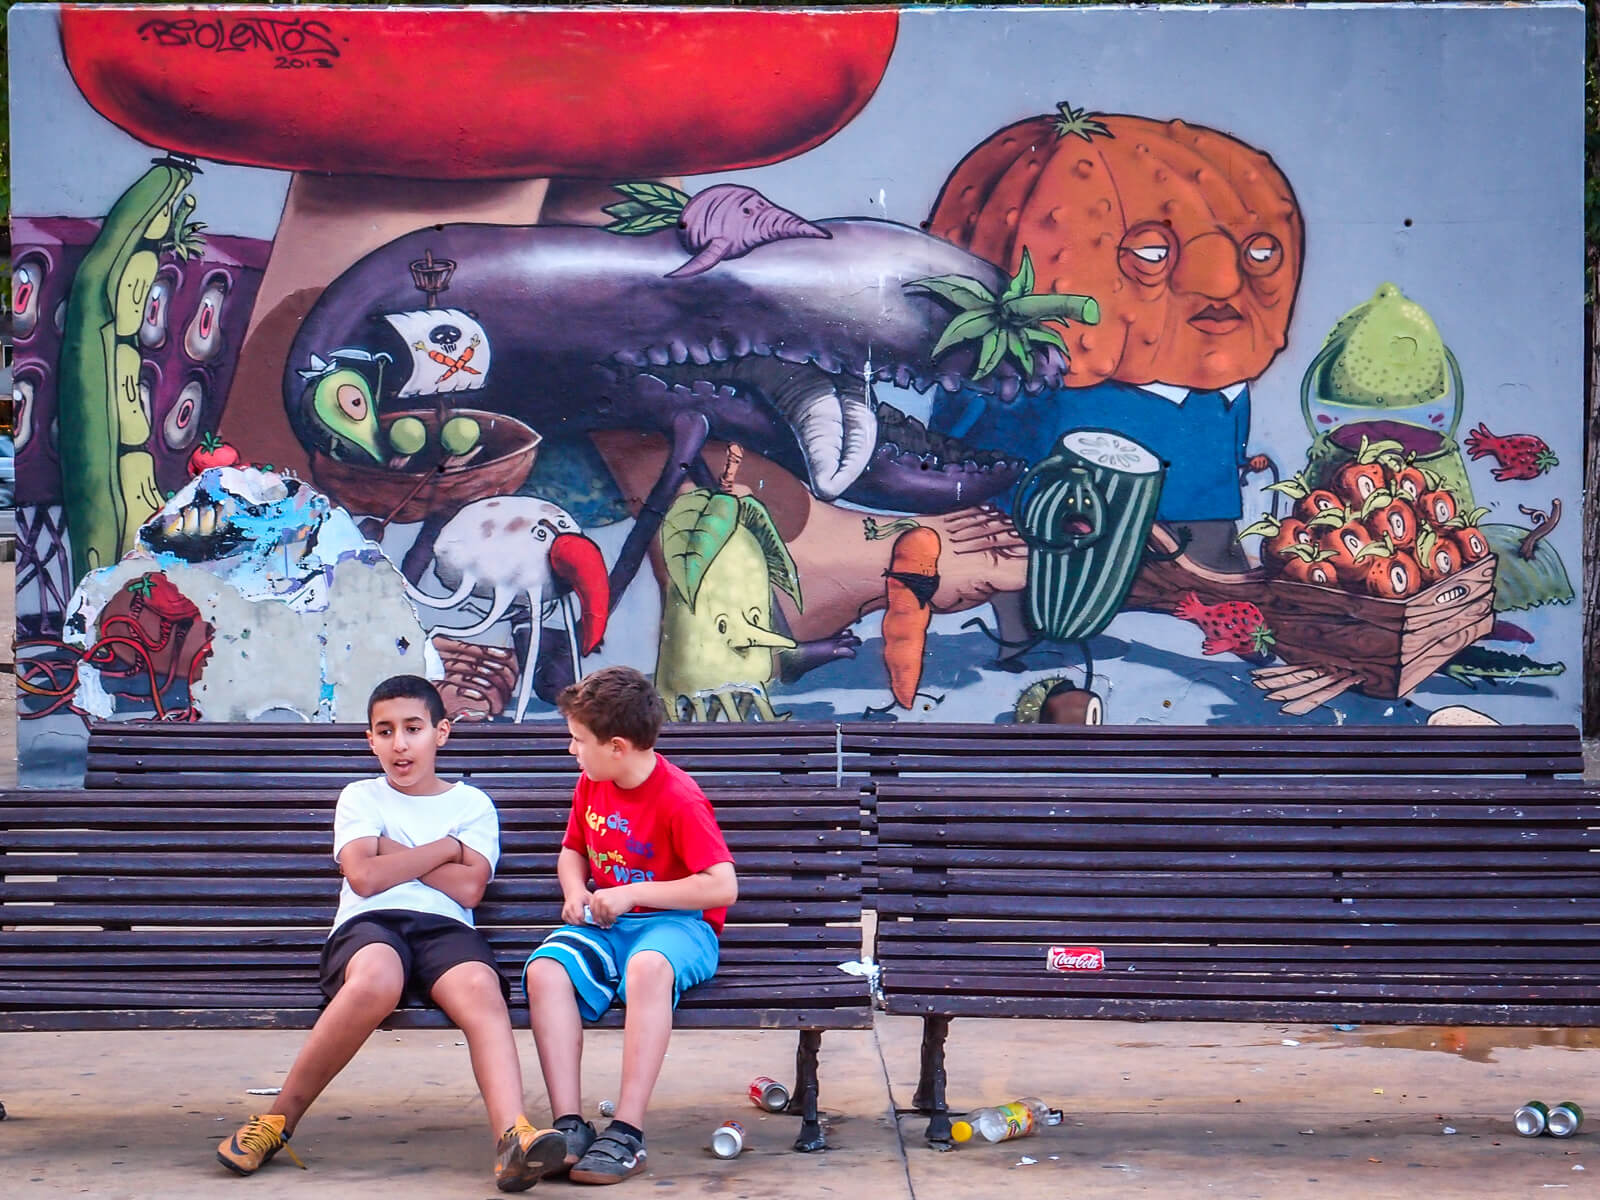 Barcelona Street Photography, Biolentos 2012 vegetables, street art mural